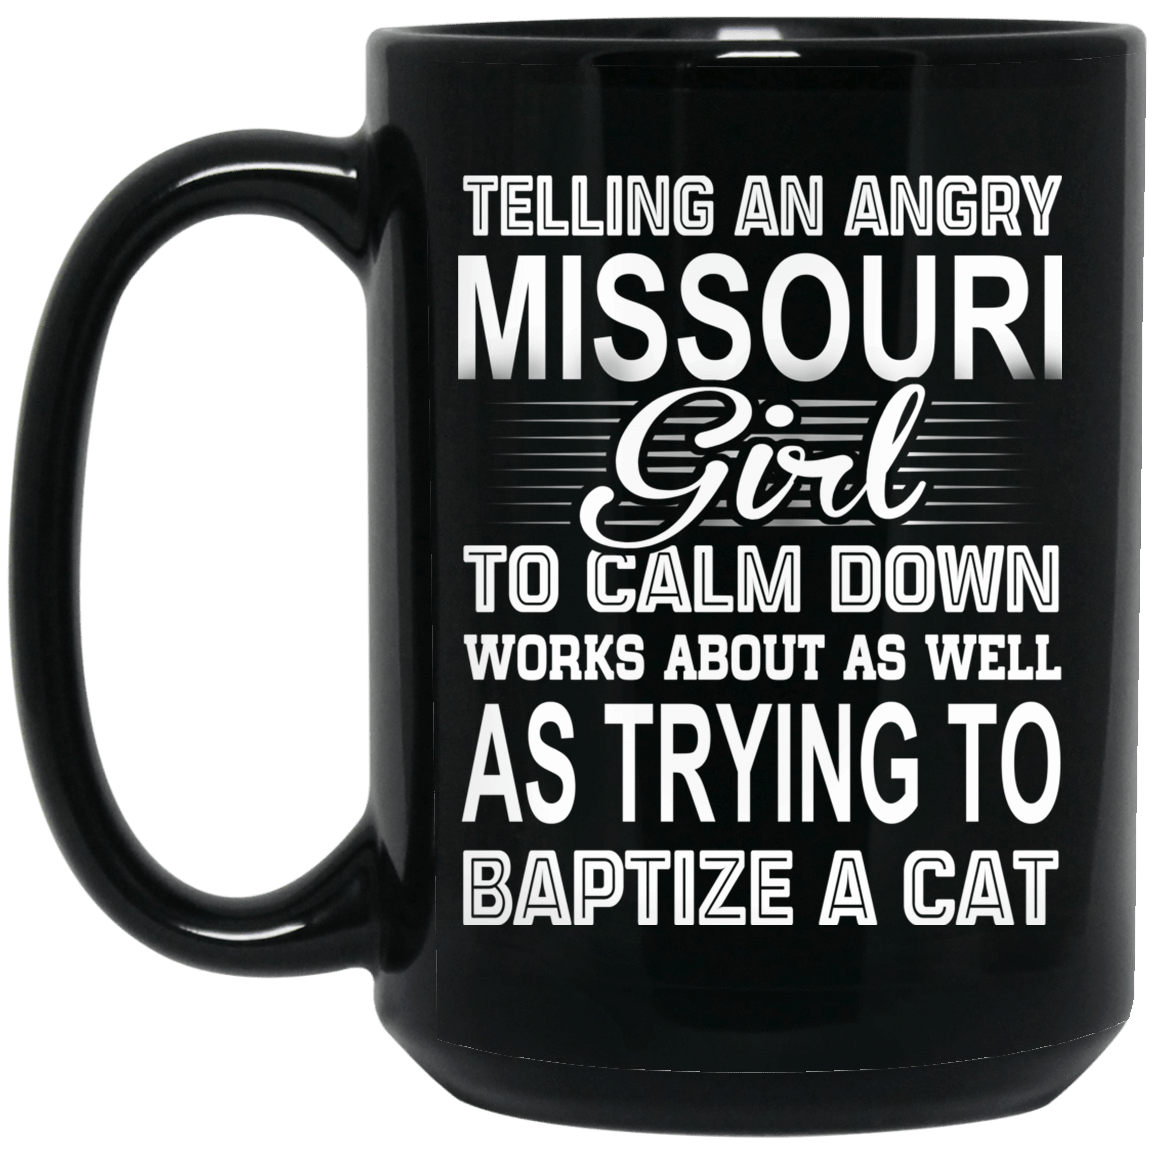 Telling An Angry Missouri Girl To Calm Down Works About As Well As Trying To Baptize A Cat Mug 1066-10182-76151628-49311 - Tee Ript